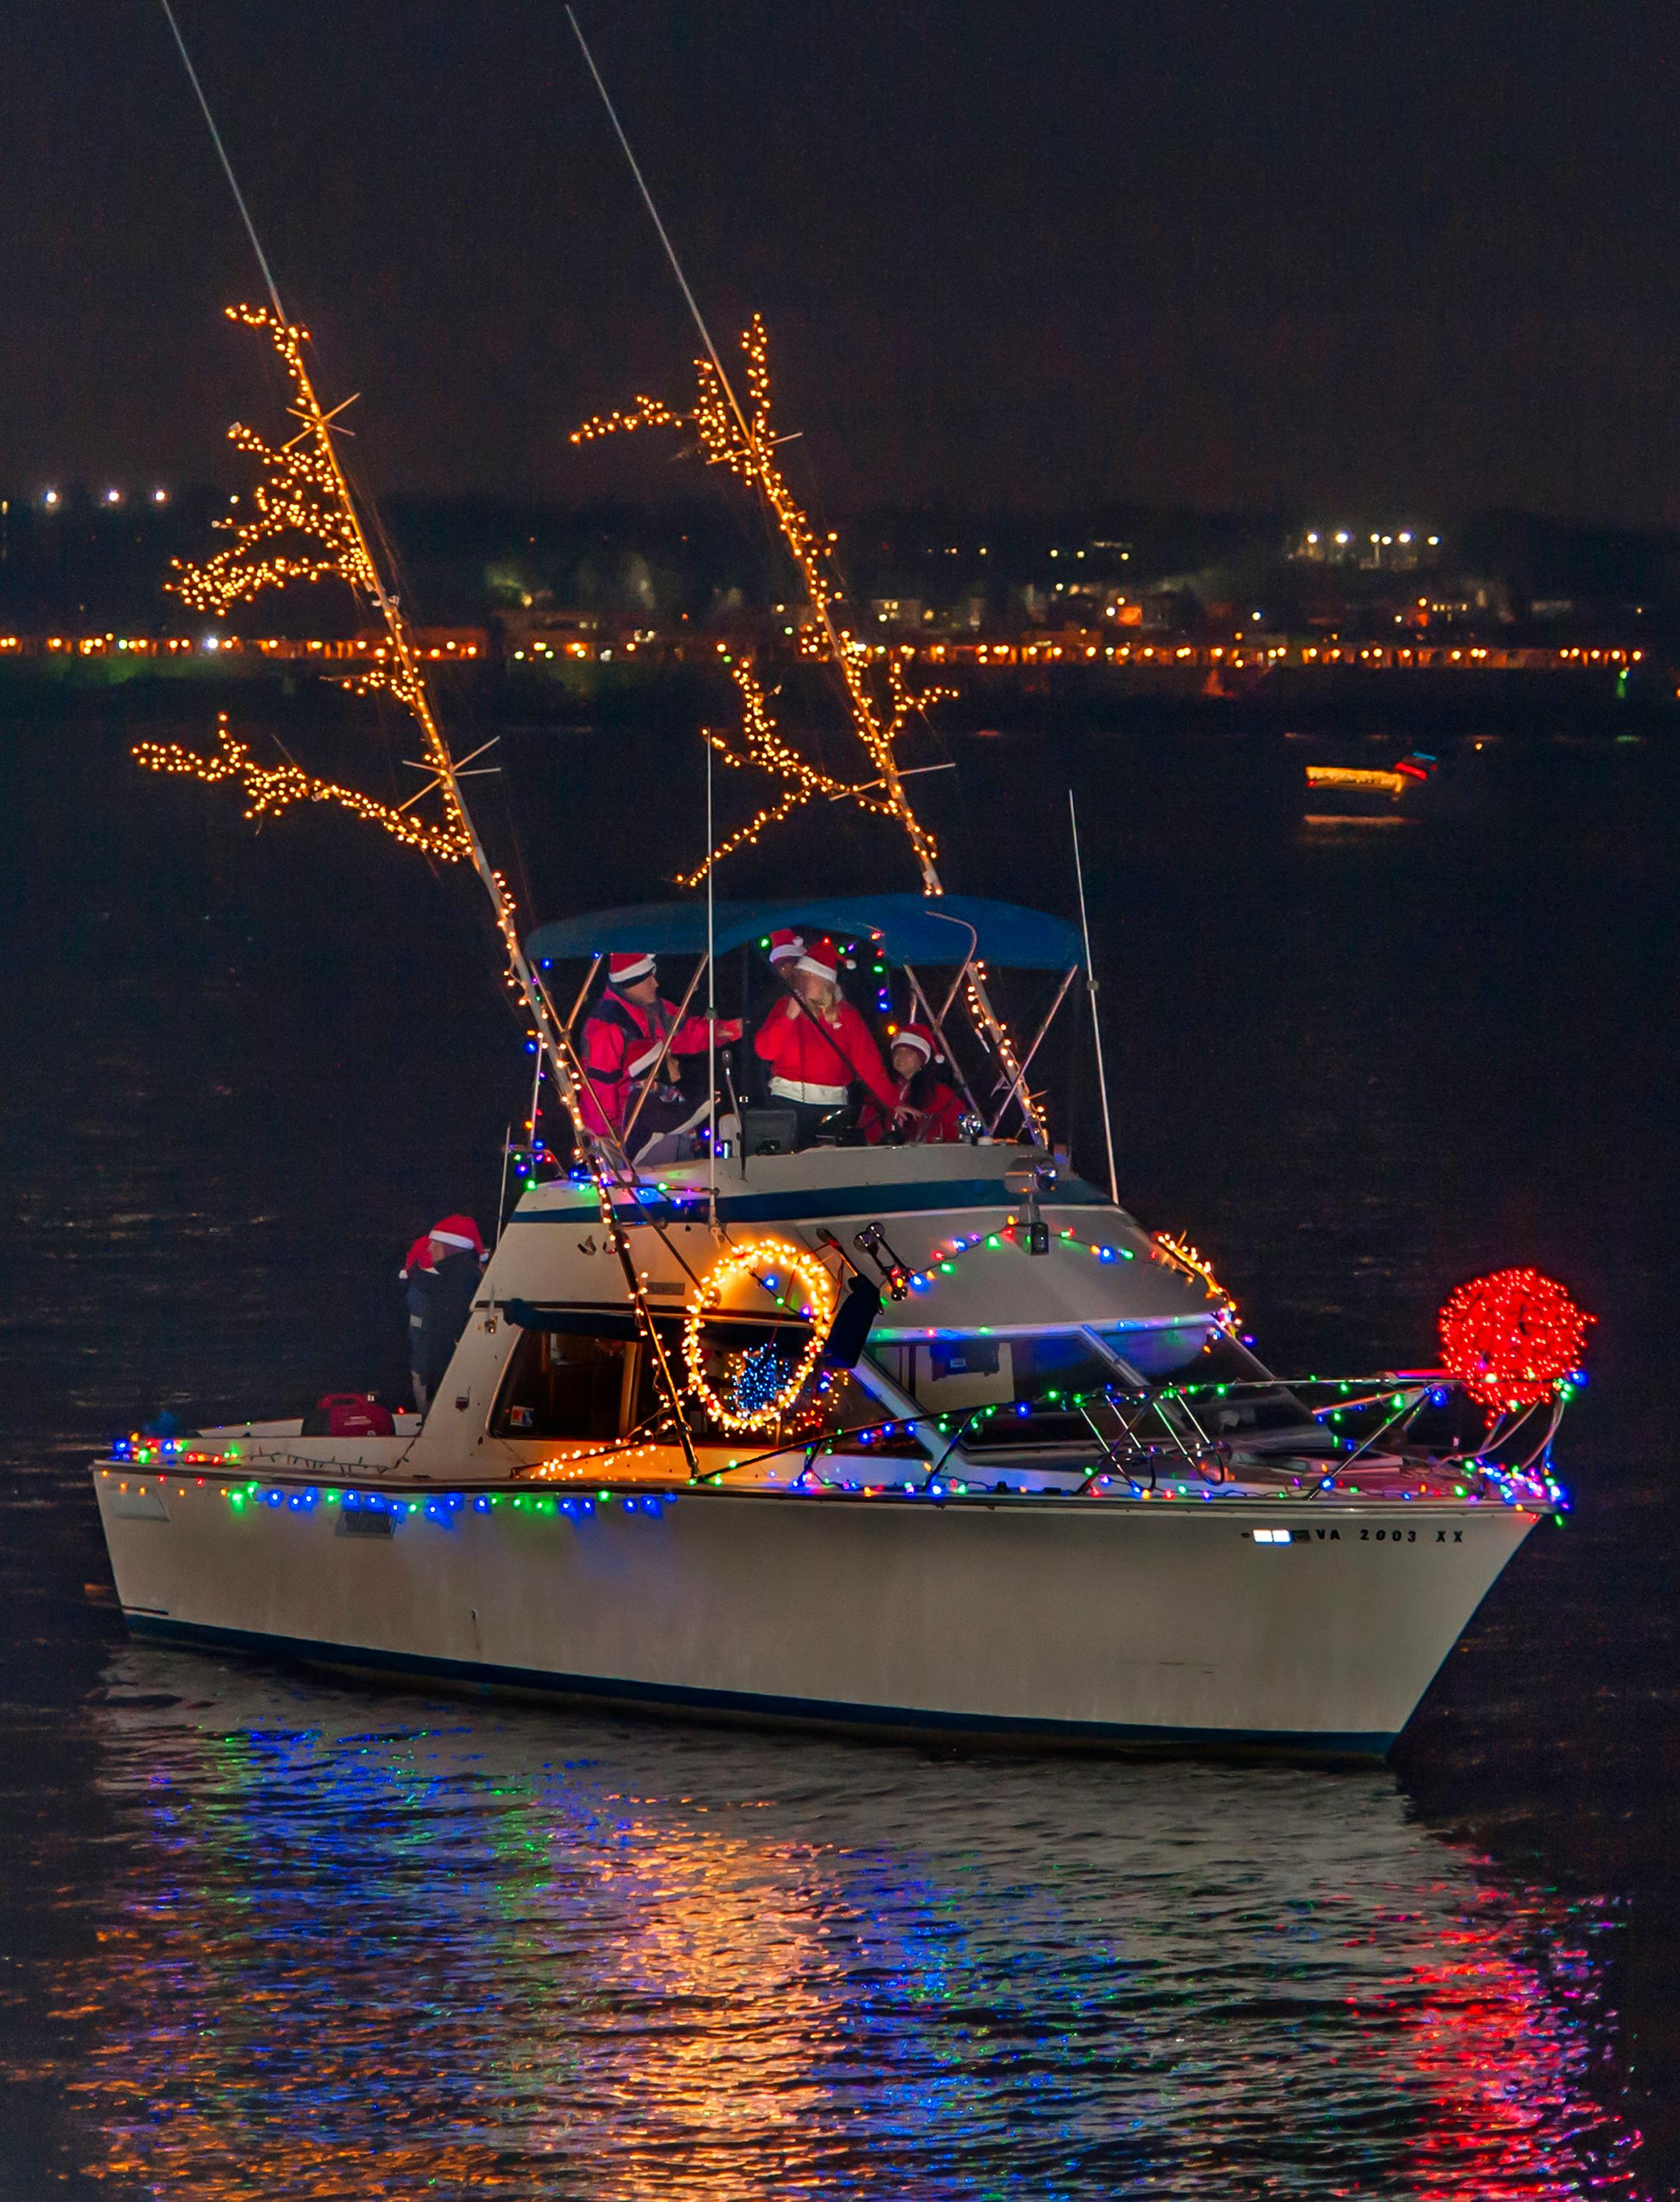 18th Annual Alexandria Holiday Boat Parade of Lights (R. Kennedy for Visit Alexandria)